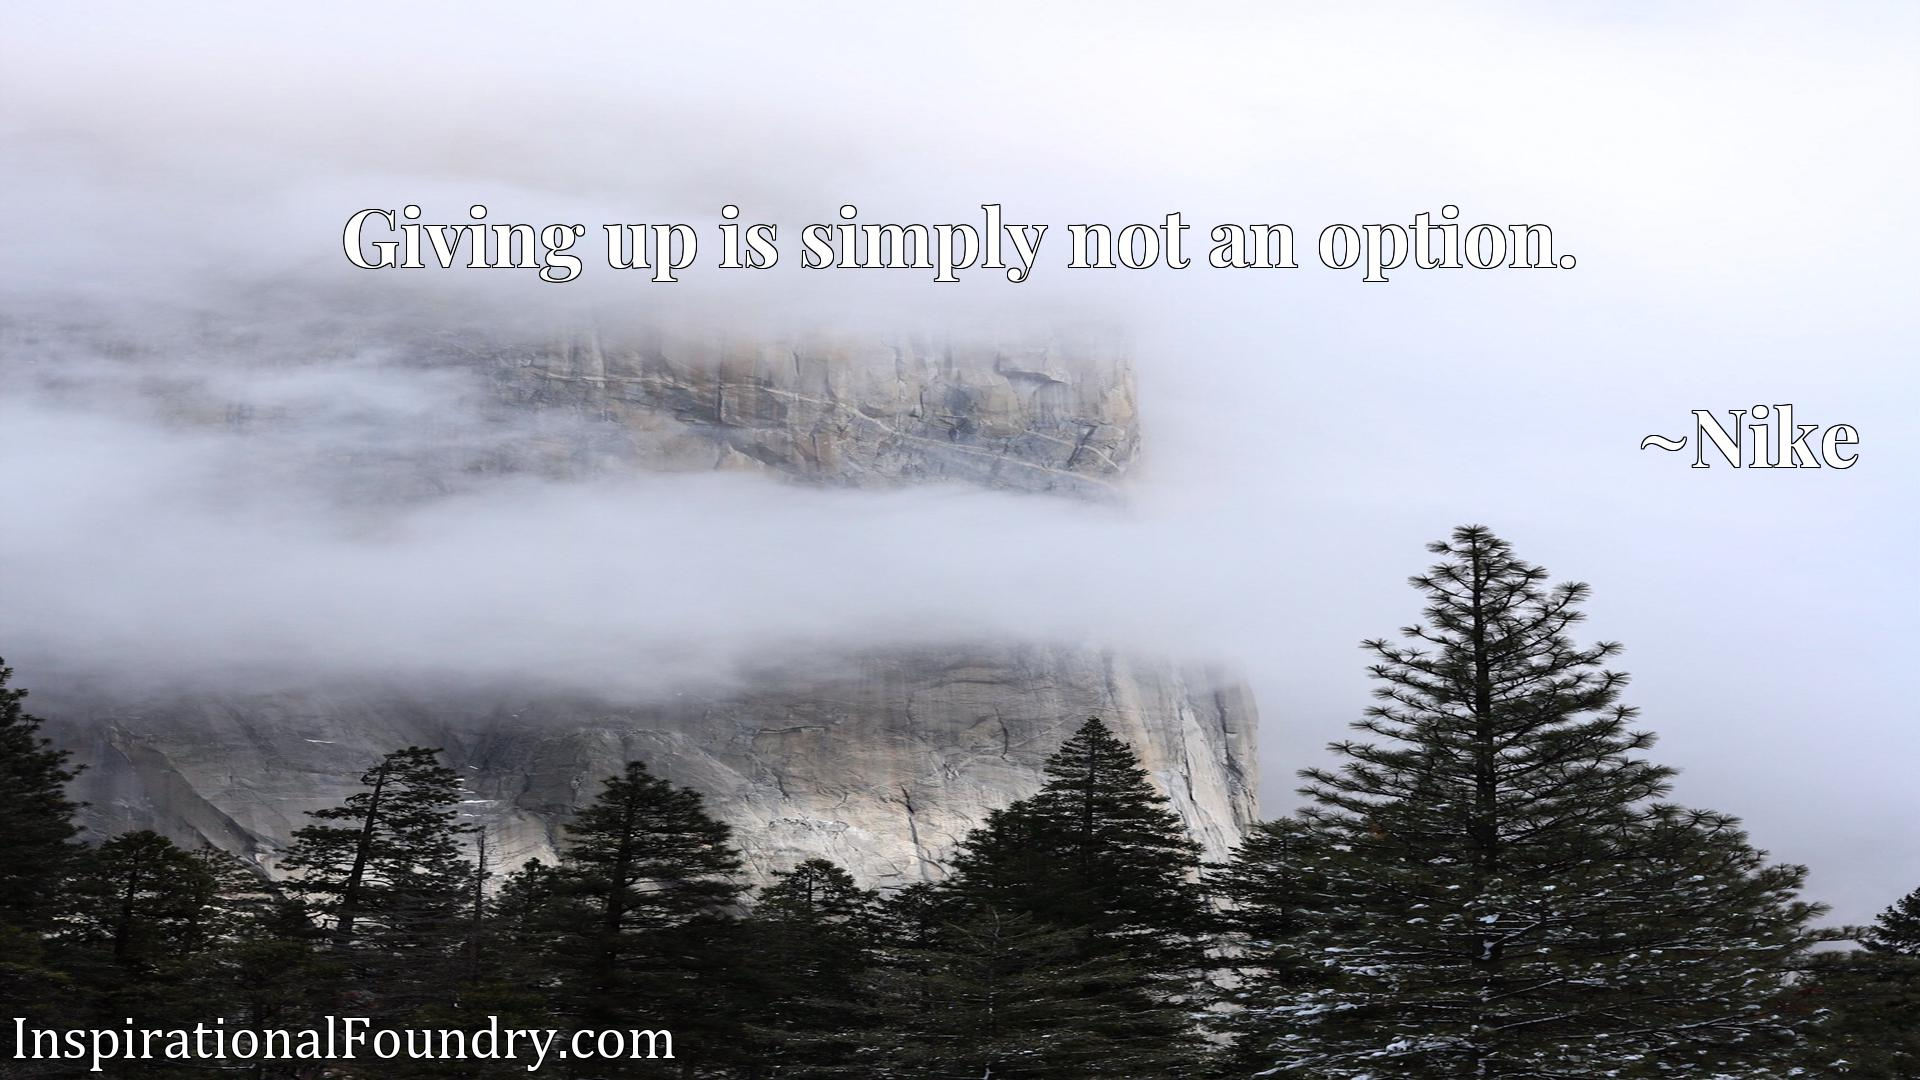 Giving up is simply not an option.